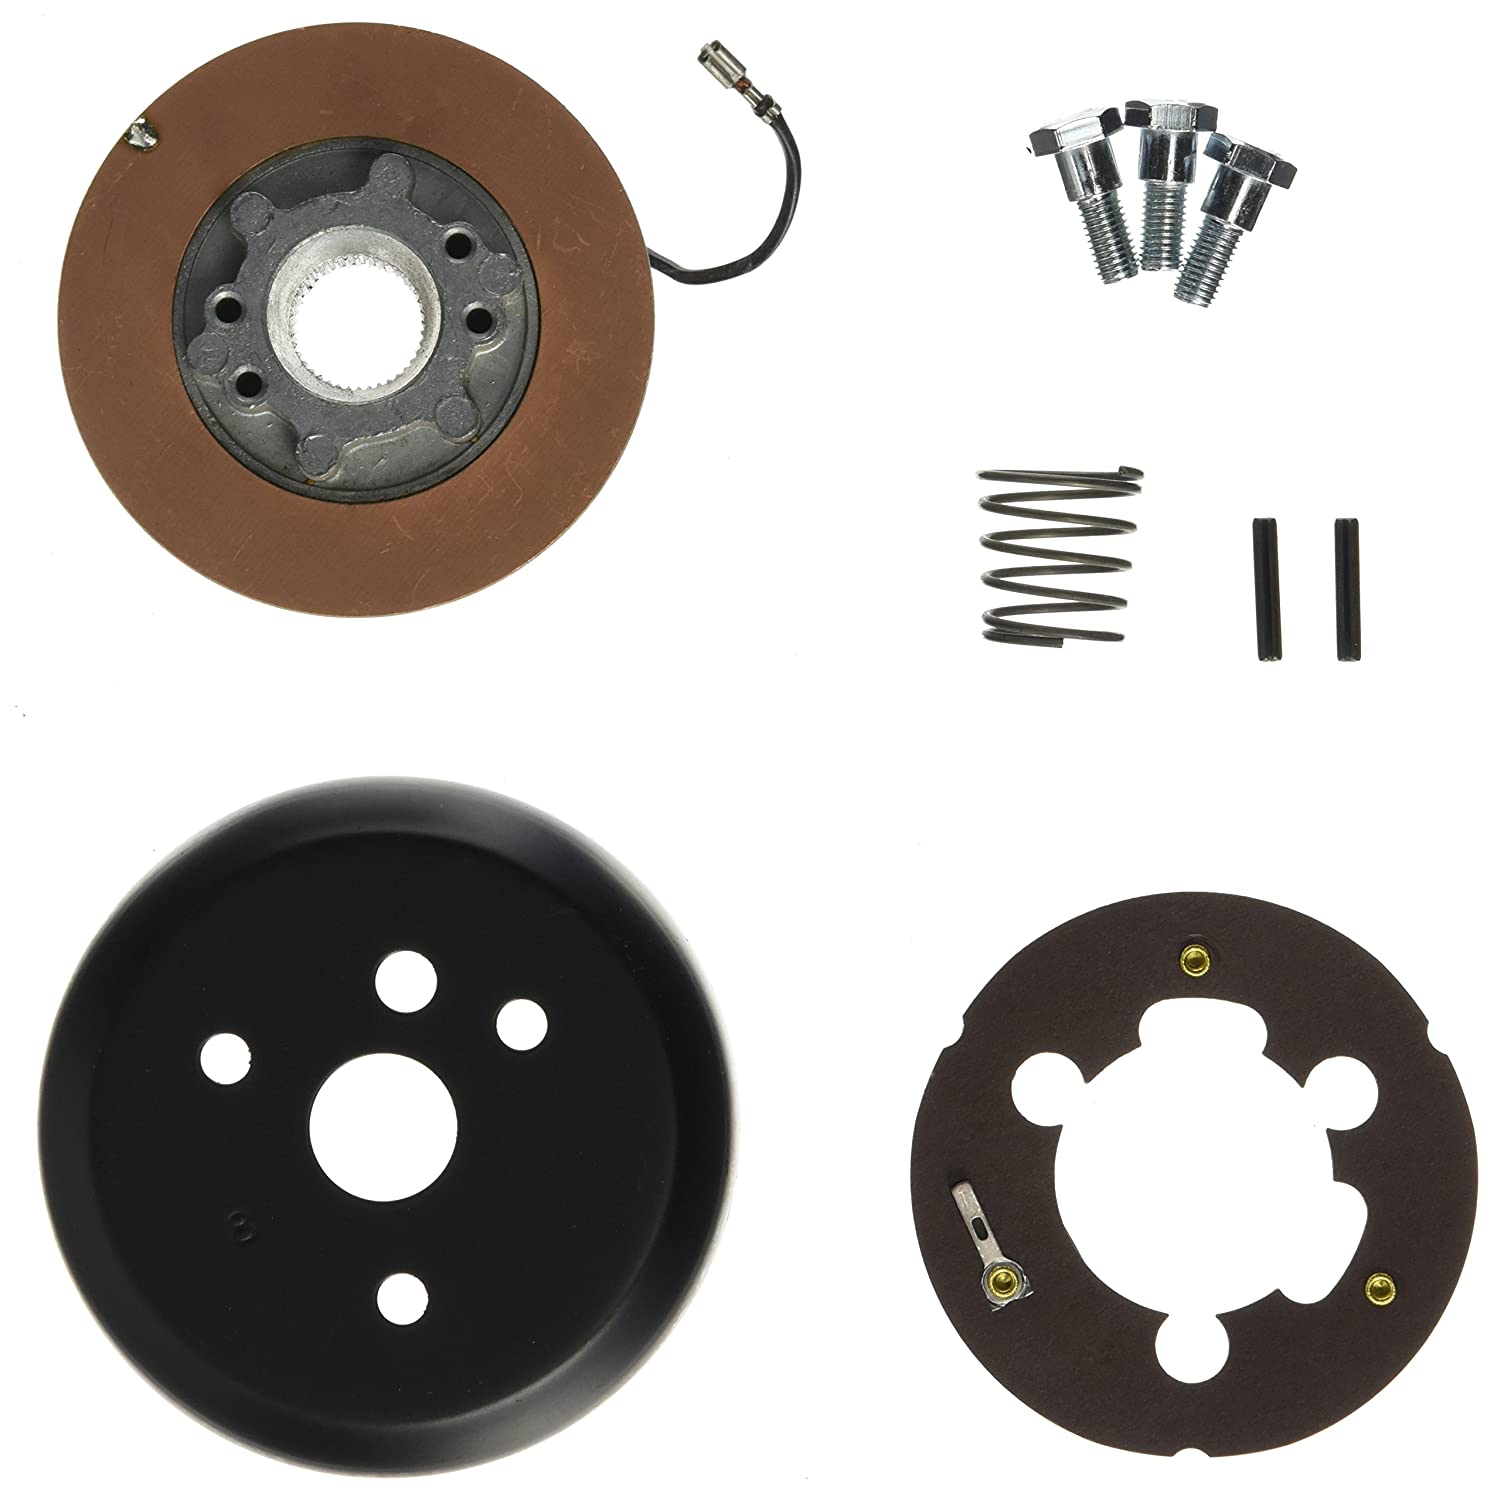 Grant Products 3568 Installation Kit